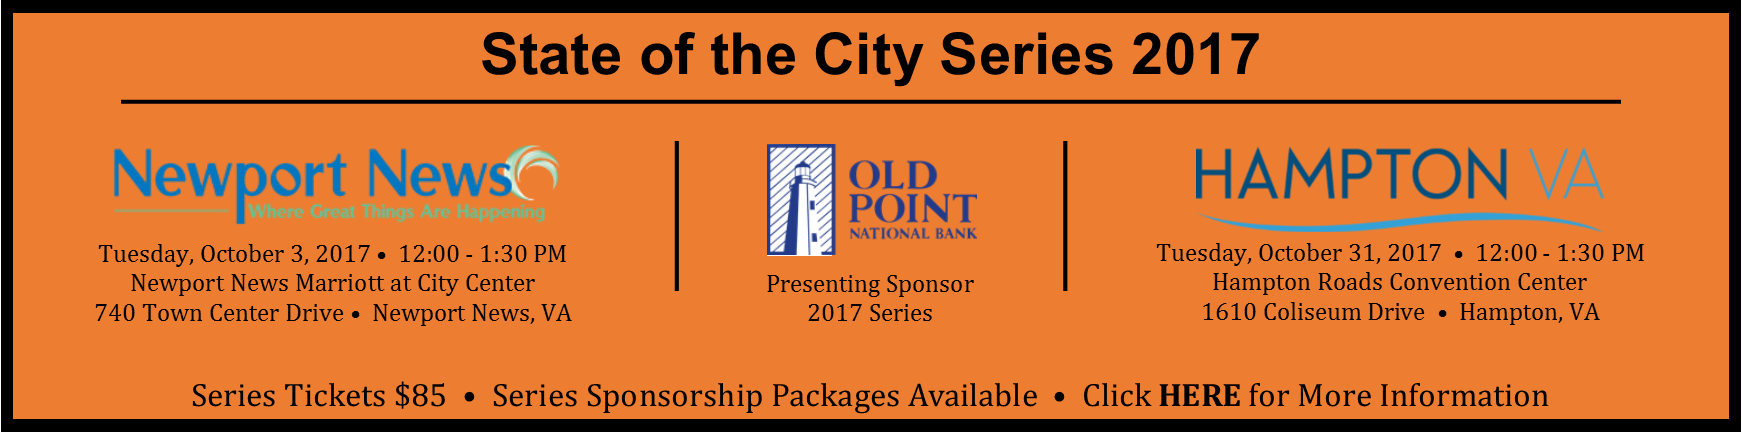 2017-State-of-the-City-Series-Banner.png